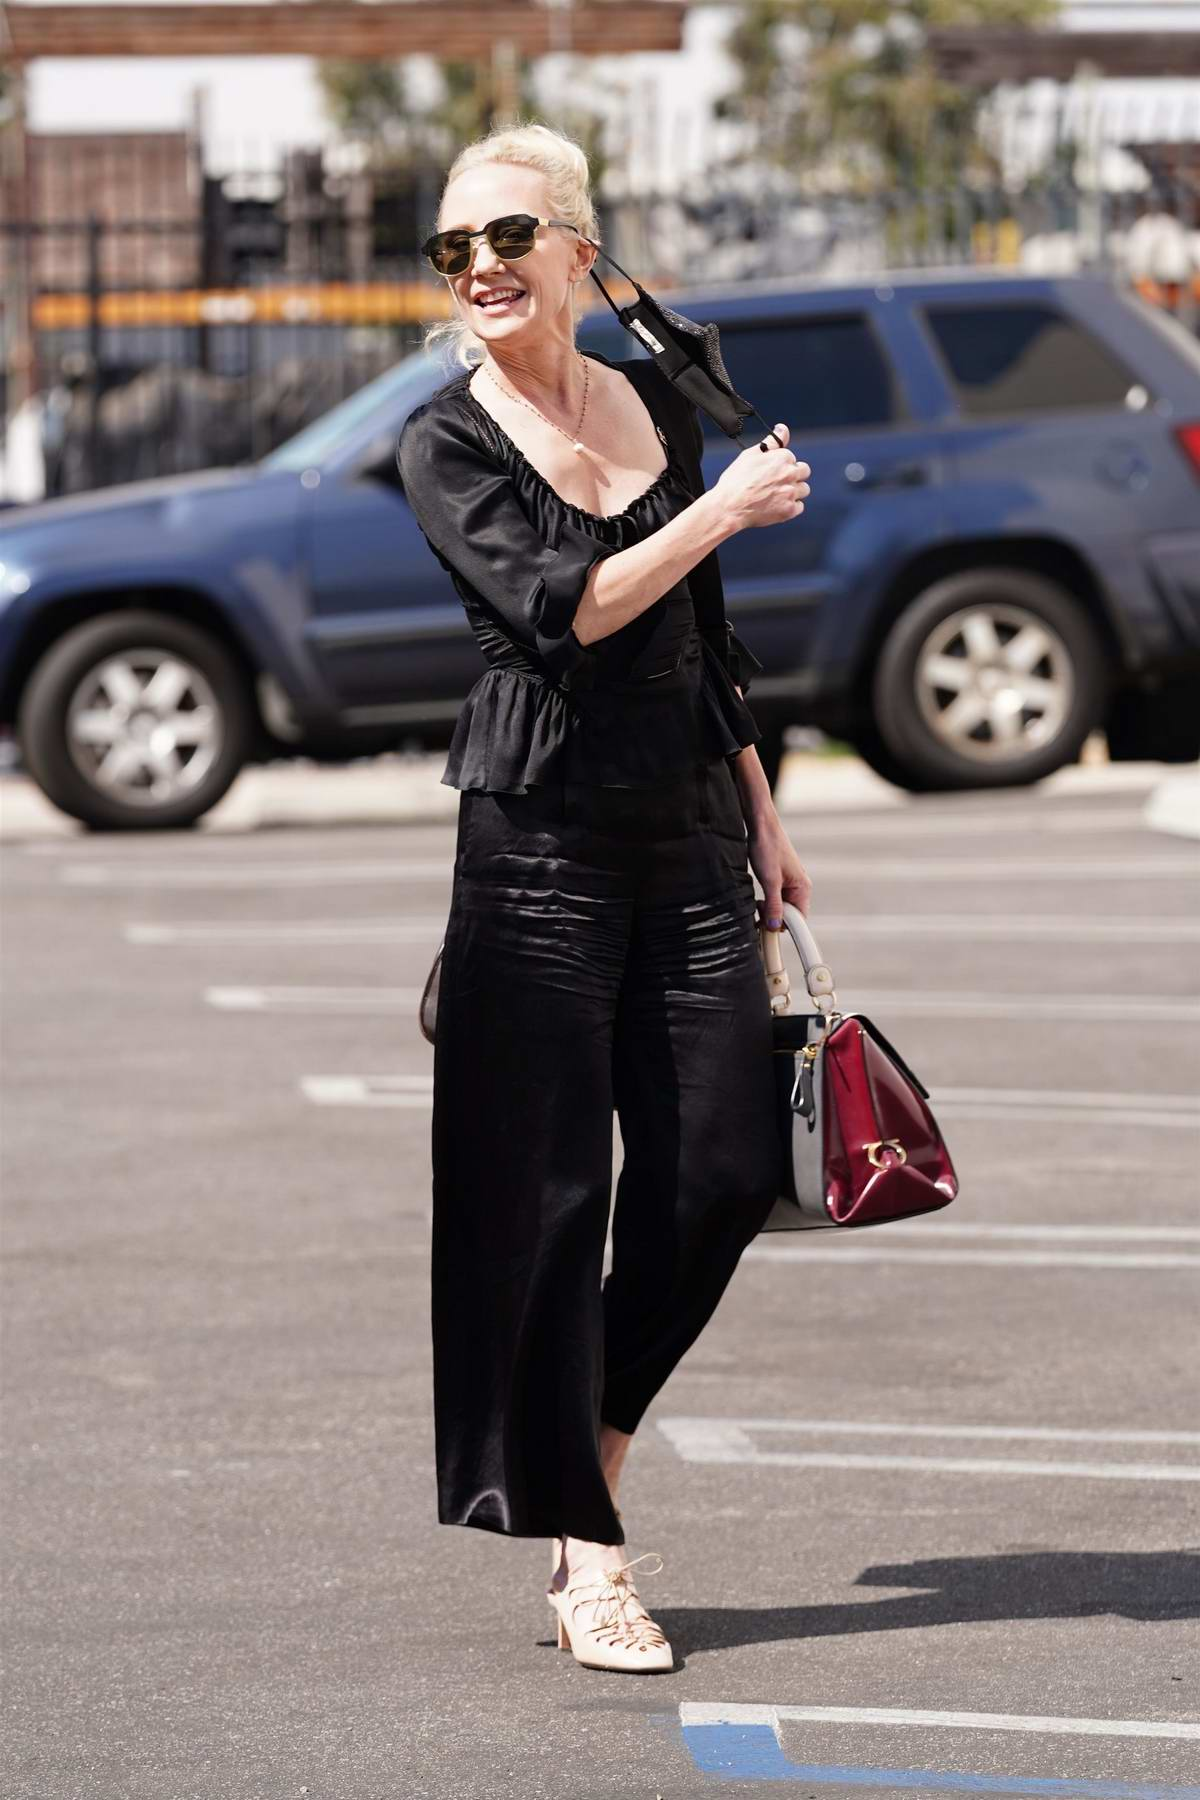 Anne Heche dons all black as she arrives at the DWTS studio in Los Angeles